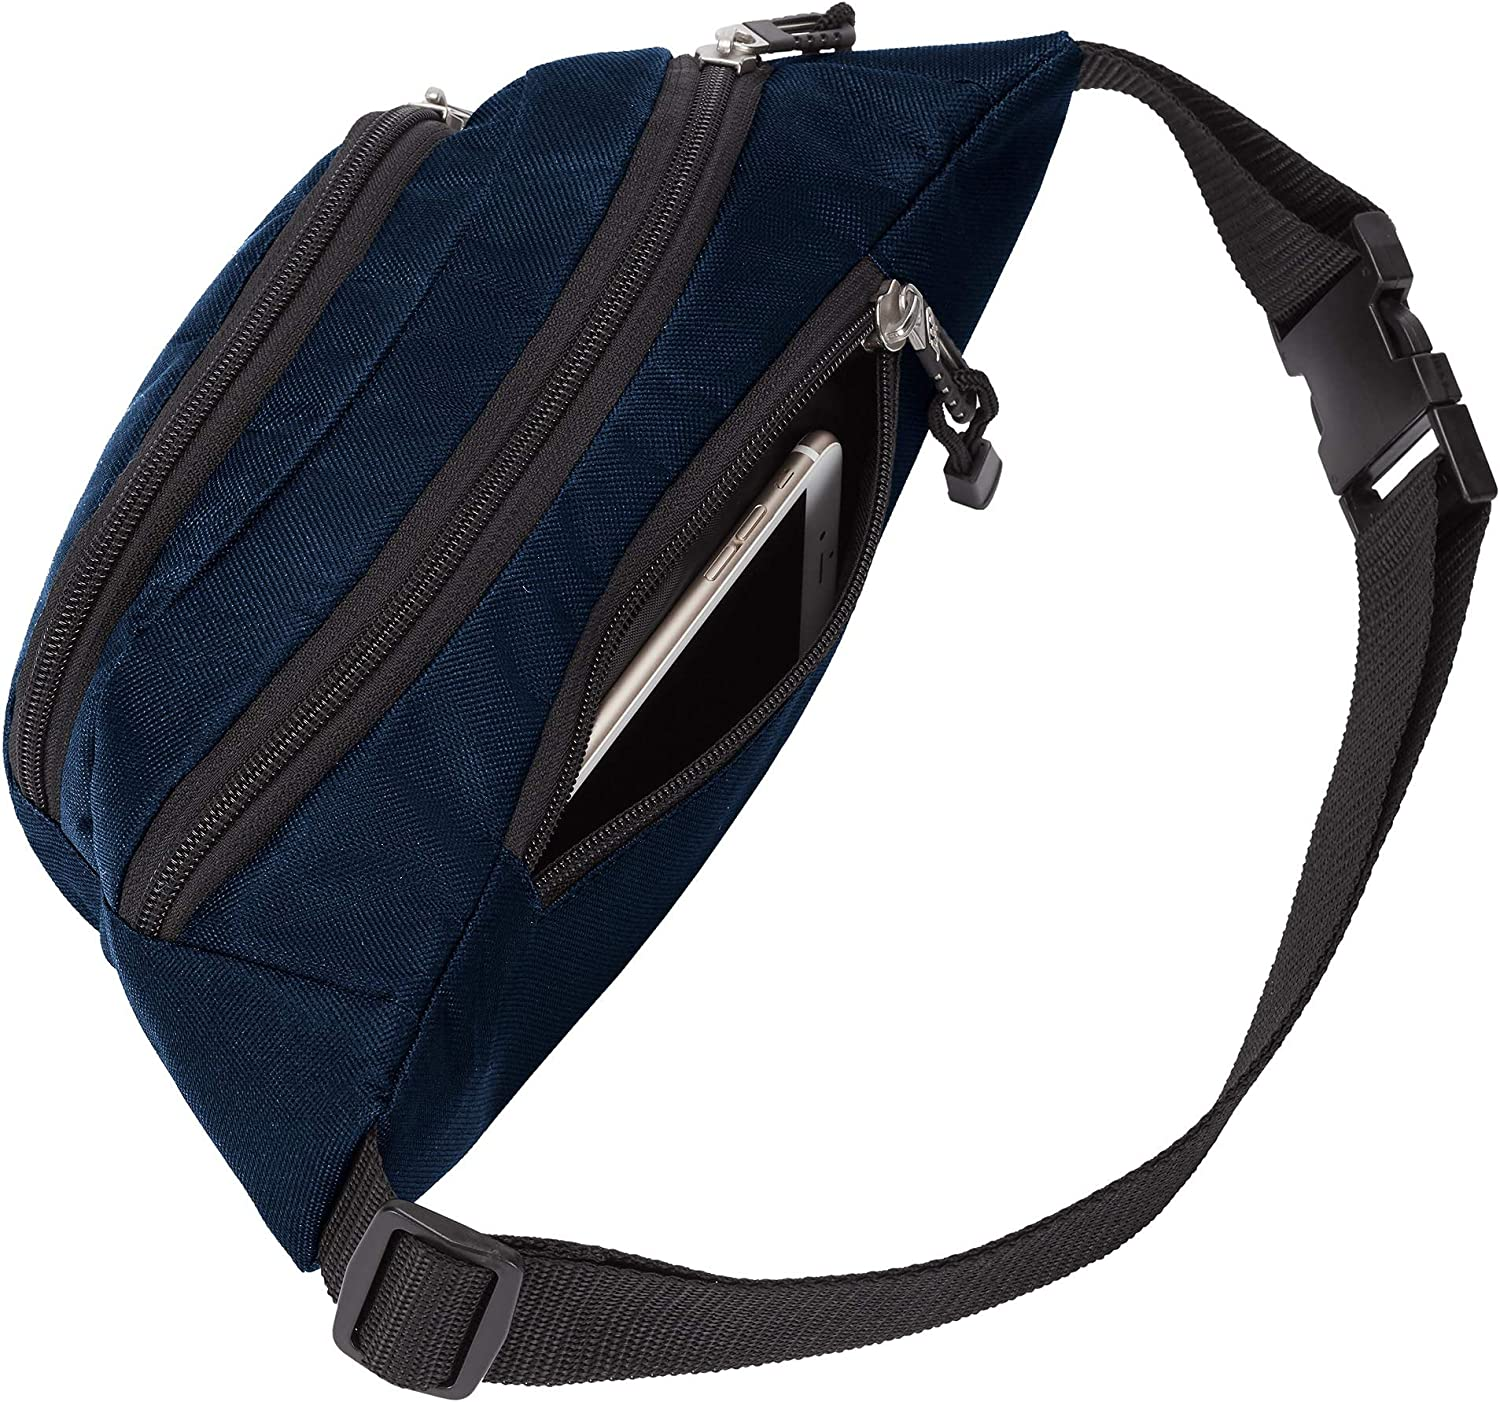 Multi Color 13 x 5 x 5 Officially Licensed NCAA Cross-Country Belt Bag